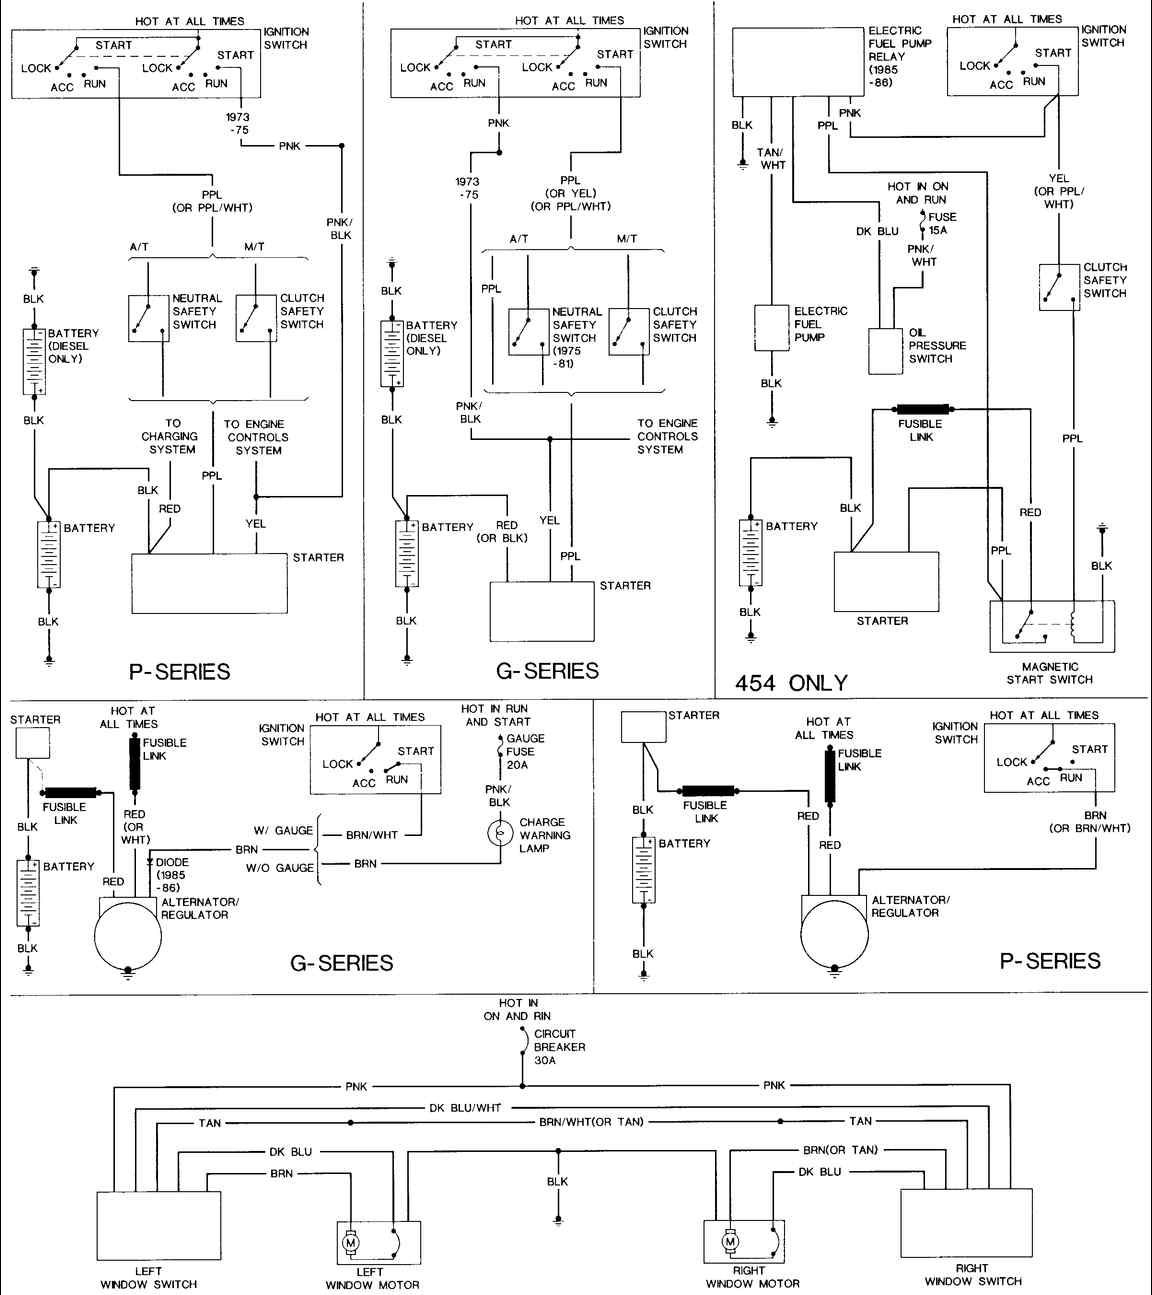 85 Chevy Truck Wiring Diagram | 85 chevy: van..the steering column and  started it by pushing..rod